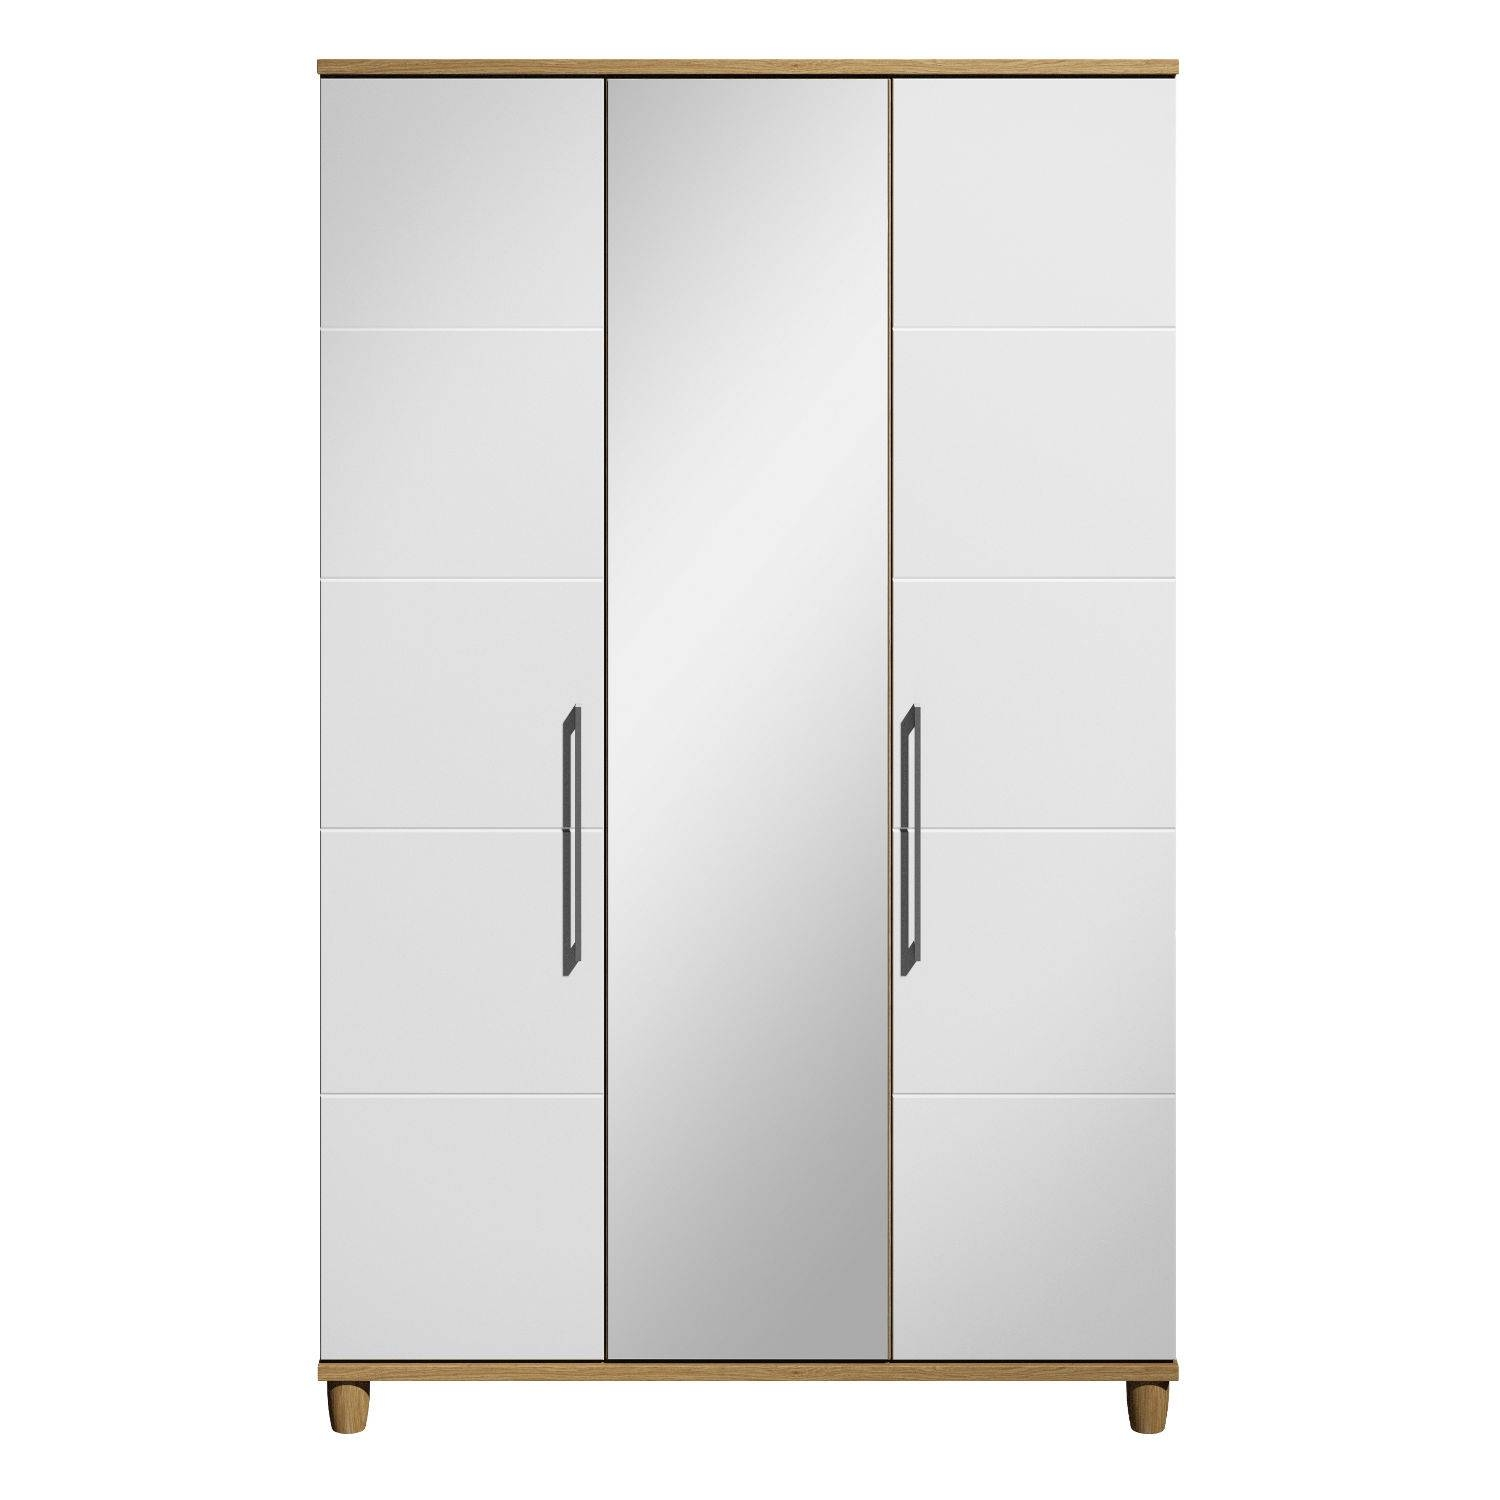 Marlena 3 Door Mirrored Wardrobe | Next Day - Select Day Delivery with regard to Three Door Mirrored Wardrobes (Image 11 of 15)